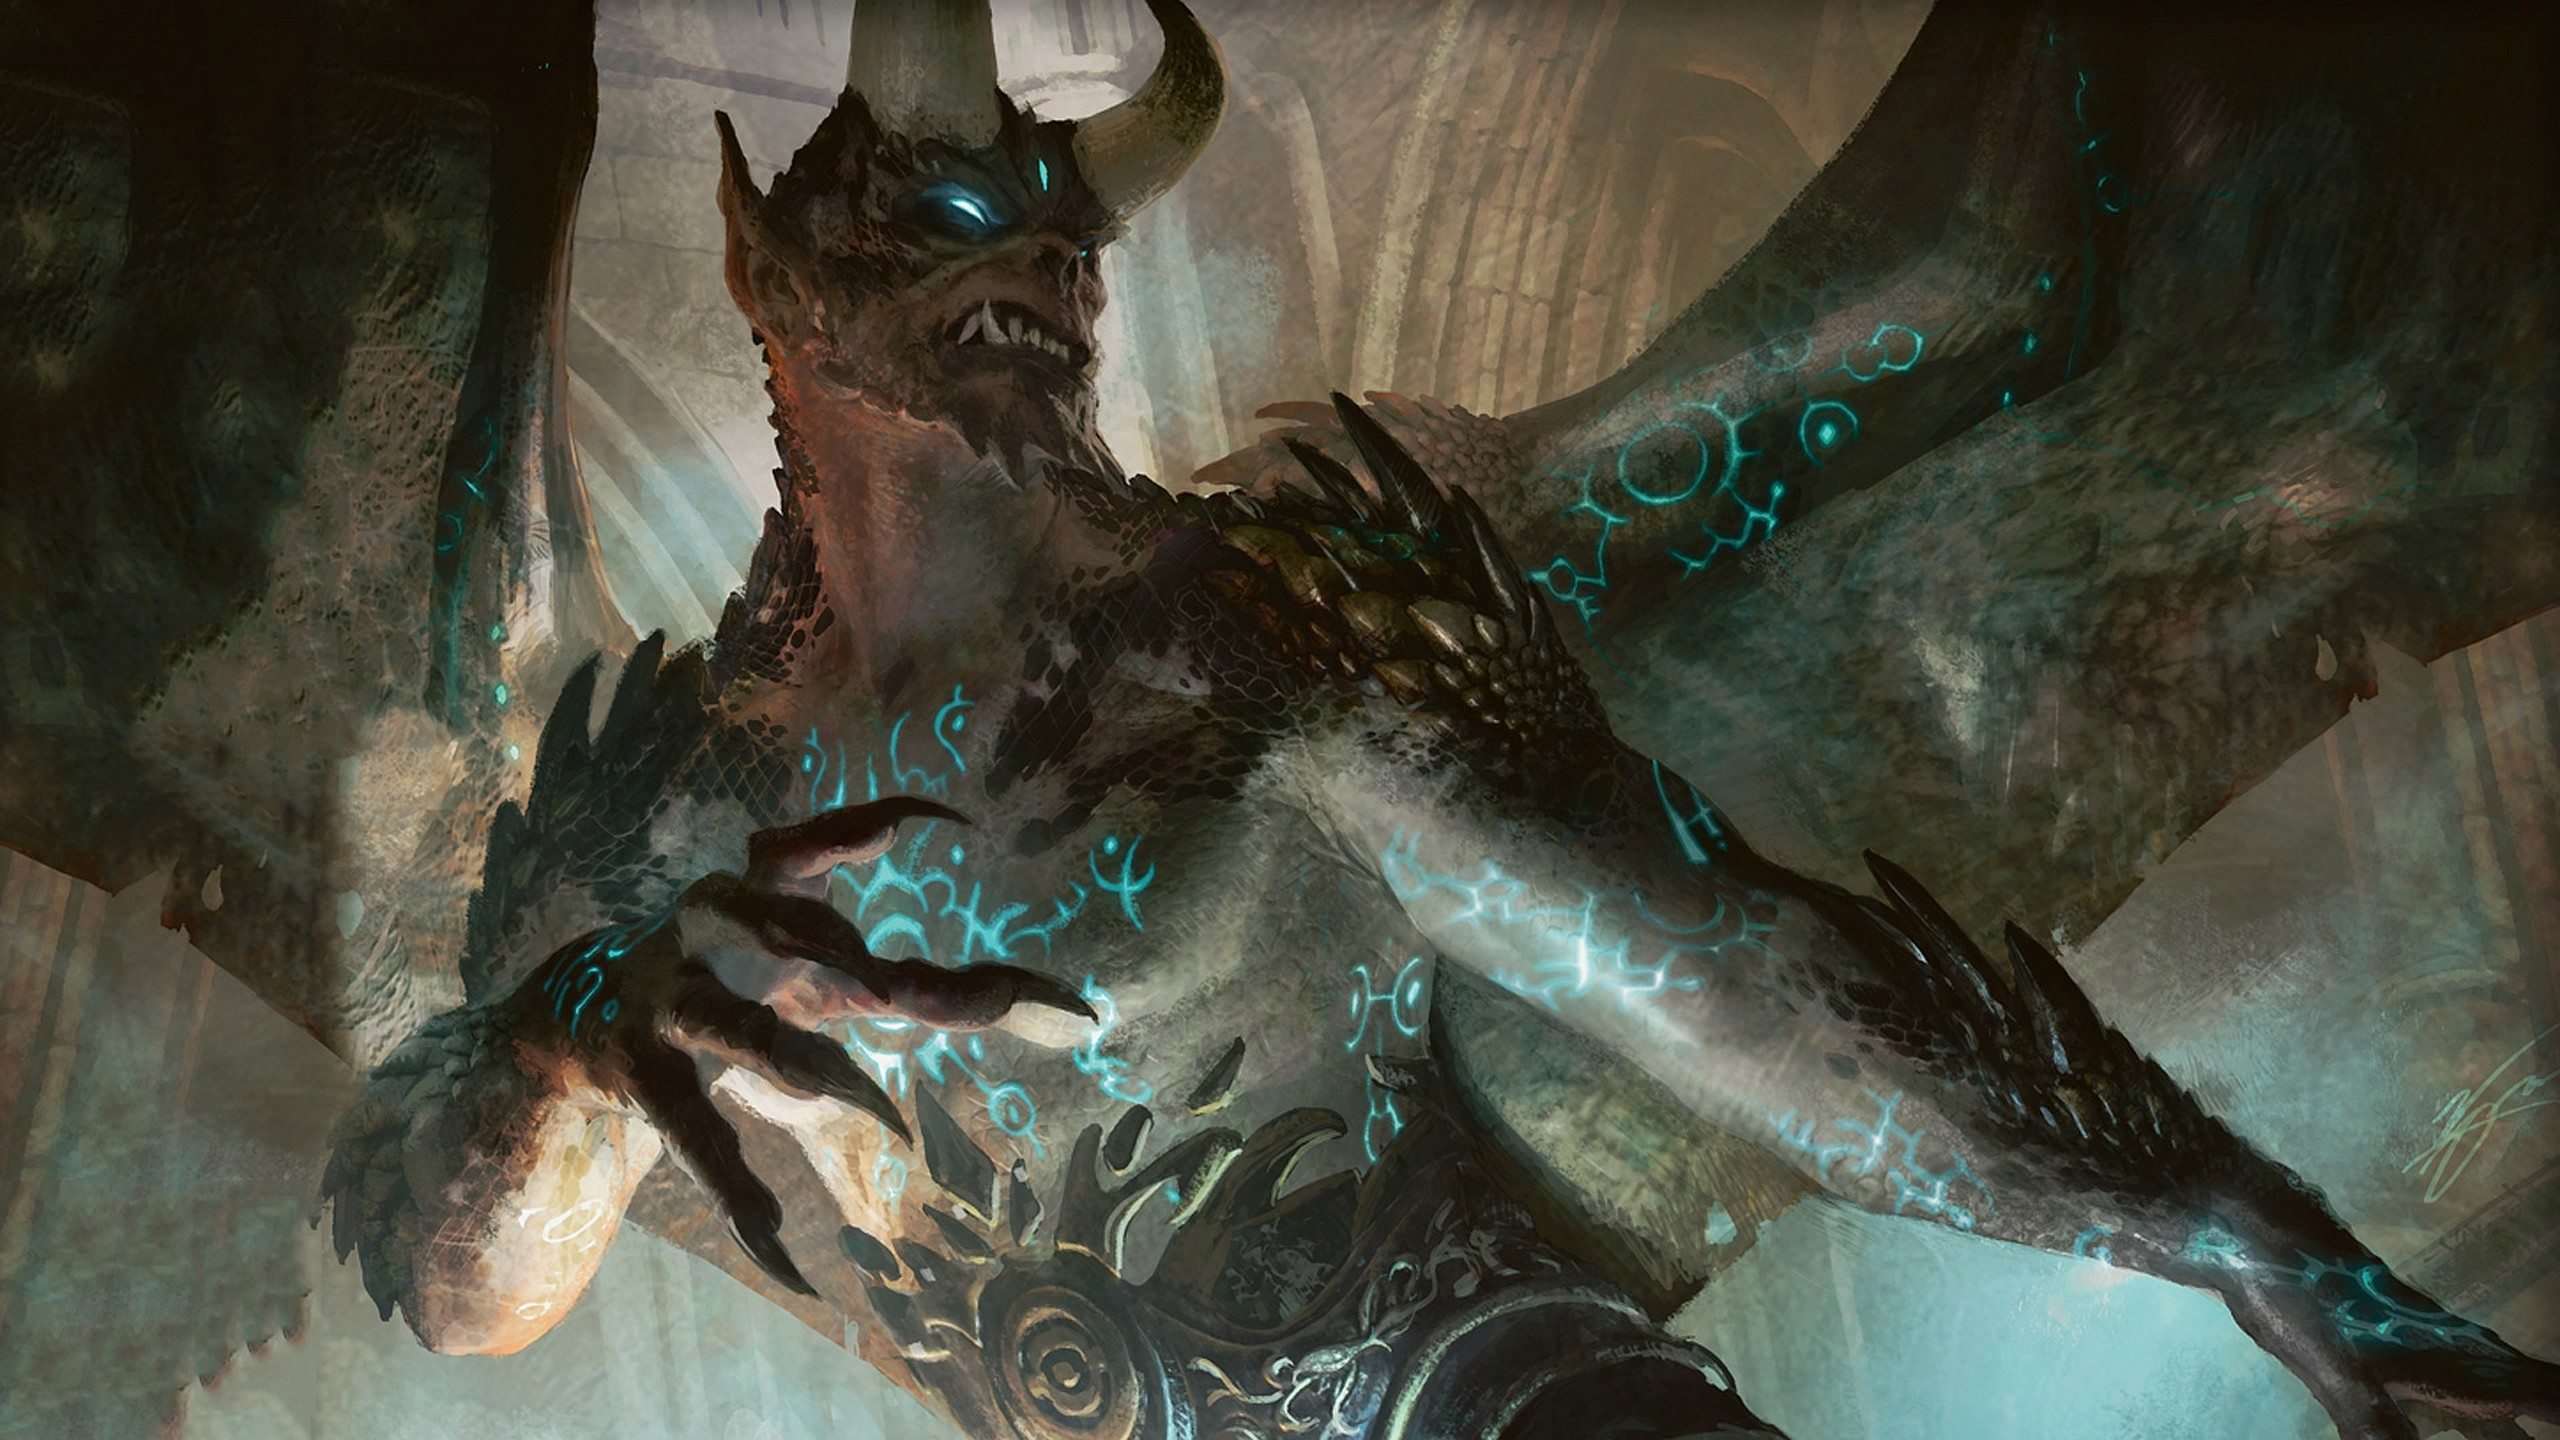 Res: 2560x1440, Game - Magic: The Gathering Wallpaper